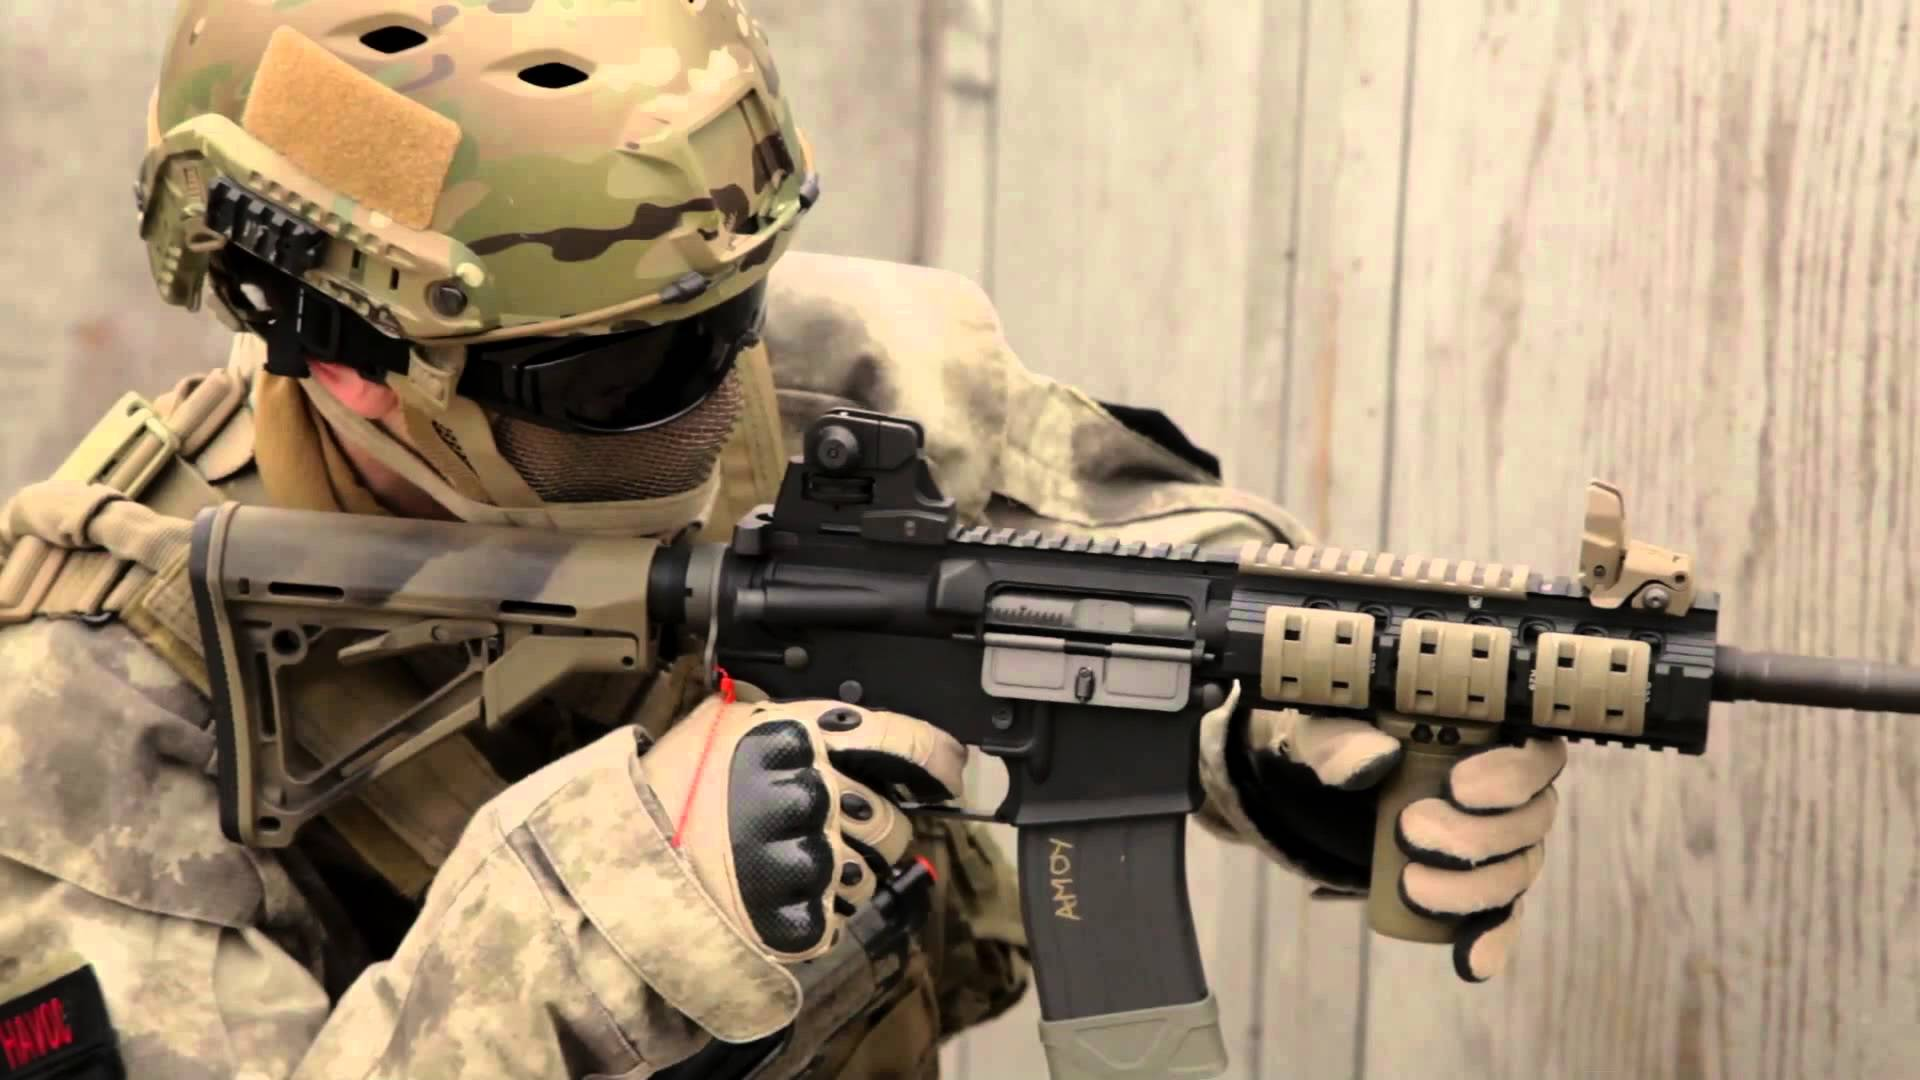 HQ Airsoft Wallpapers | File 134.12Kb